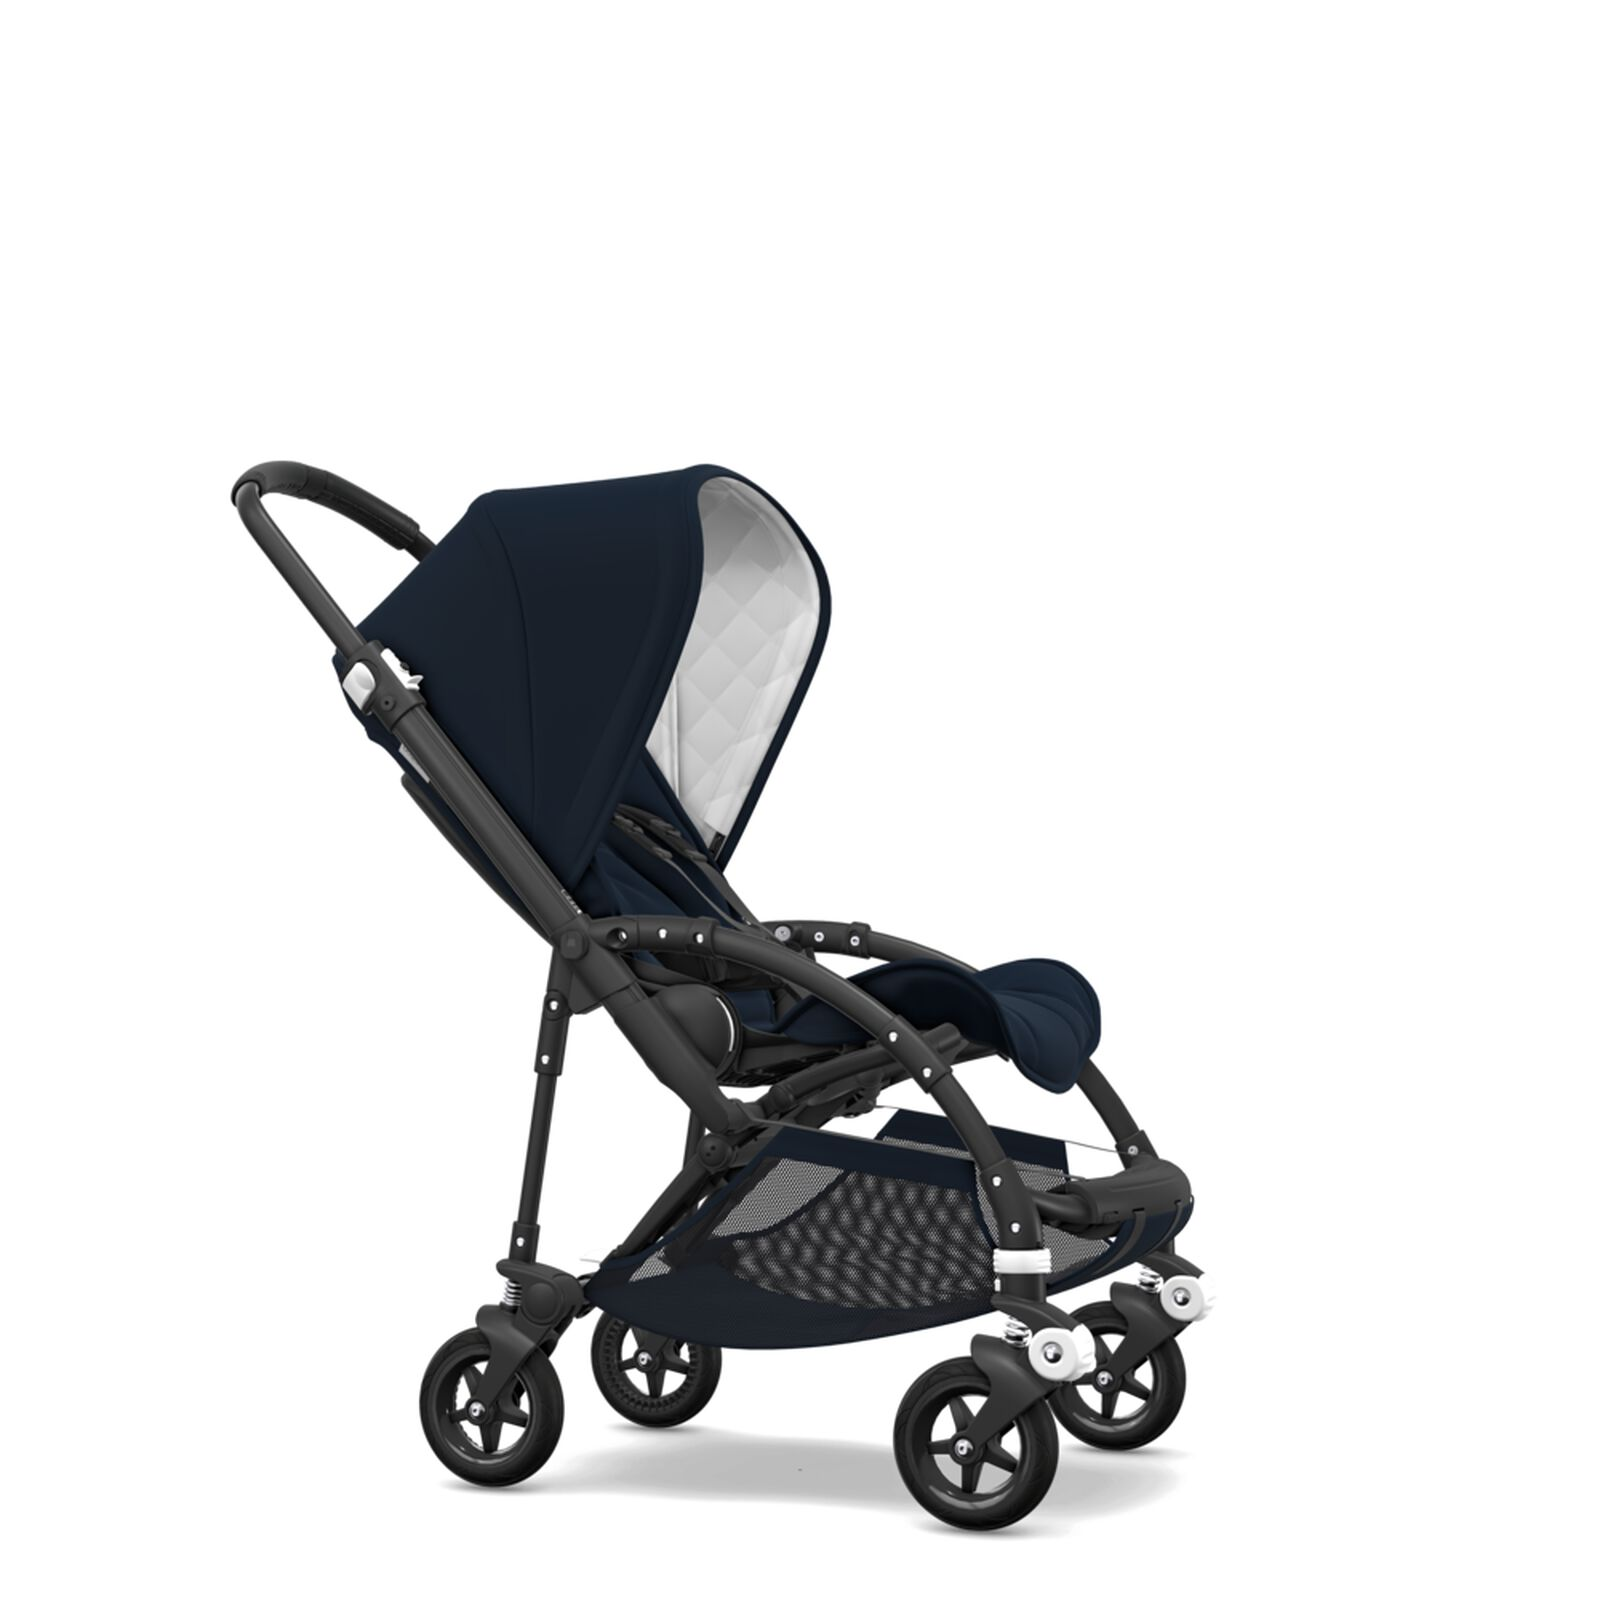 Bugaboo Bee 5 sittvagn